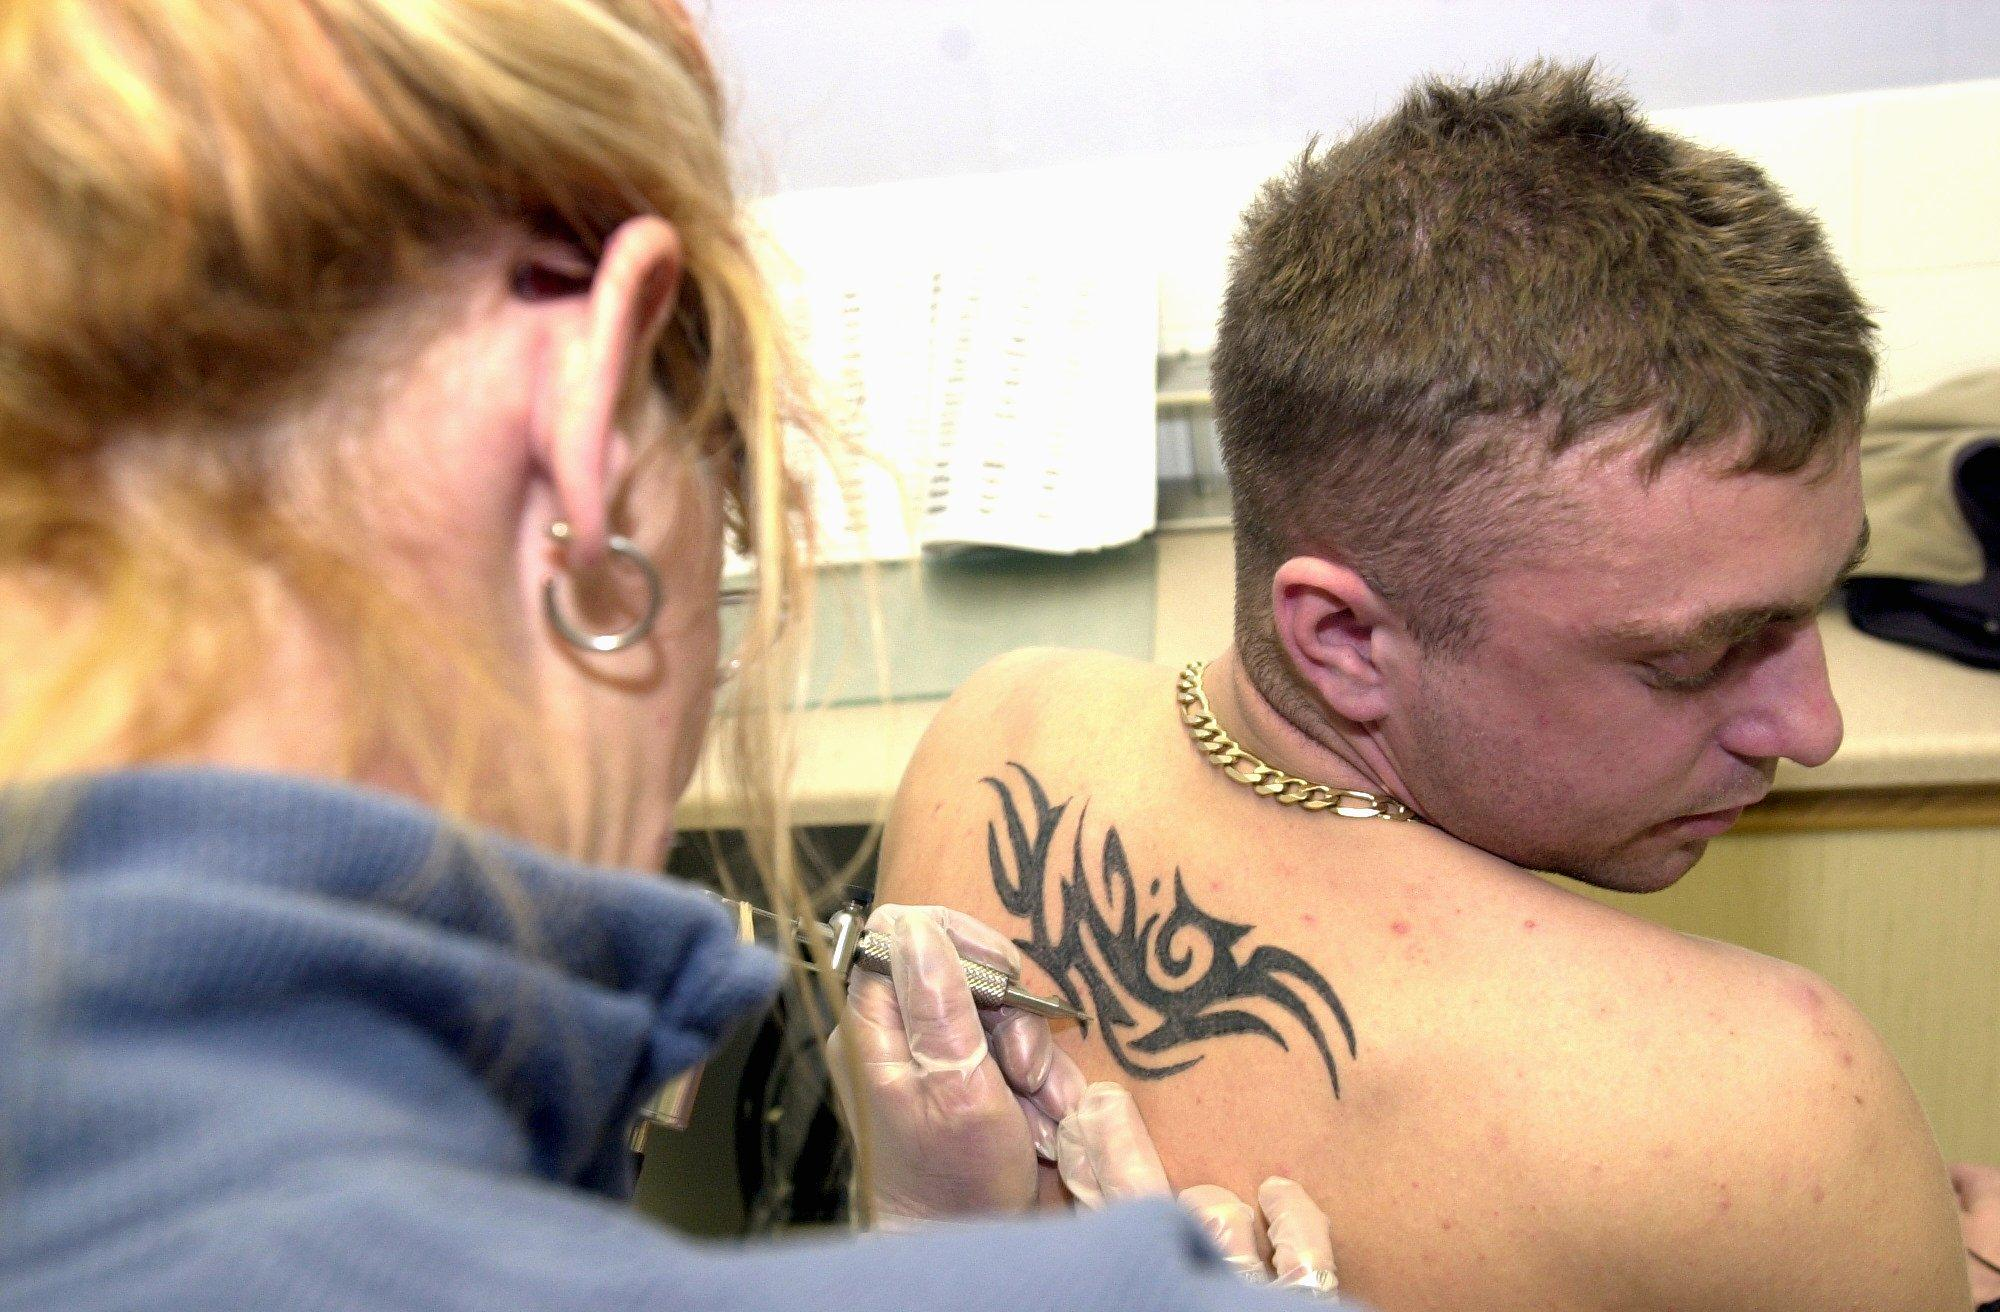 Are You One Of The People Getting A Tattoo In Doncaster Over The Last Two Decades In Our Retro Gallery Doncaster Free Press